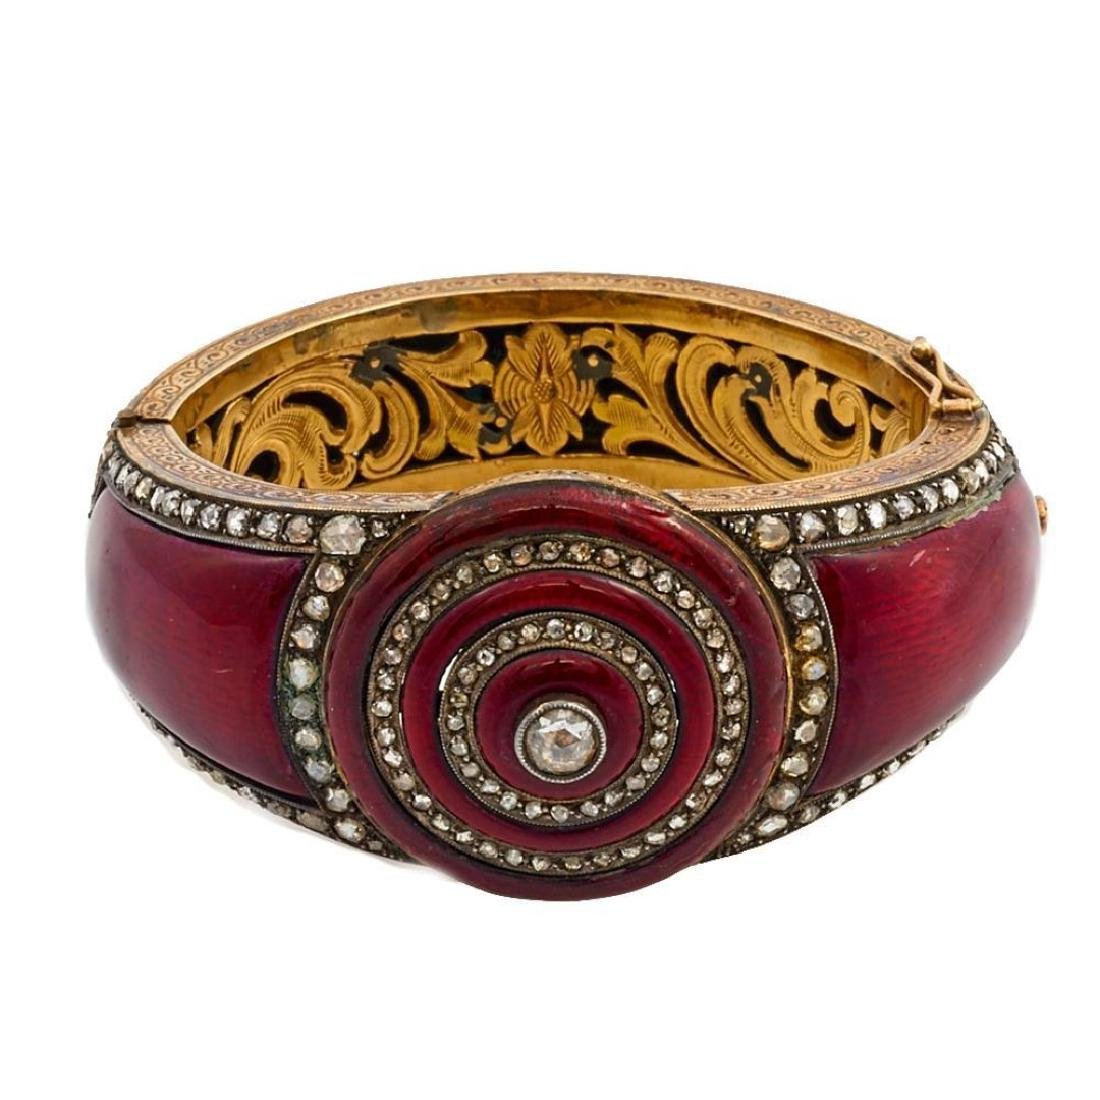 Rose-cut diamond, enamel & gilt silver bangle bracelet - 2